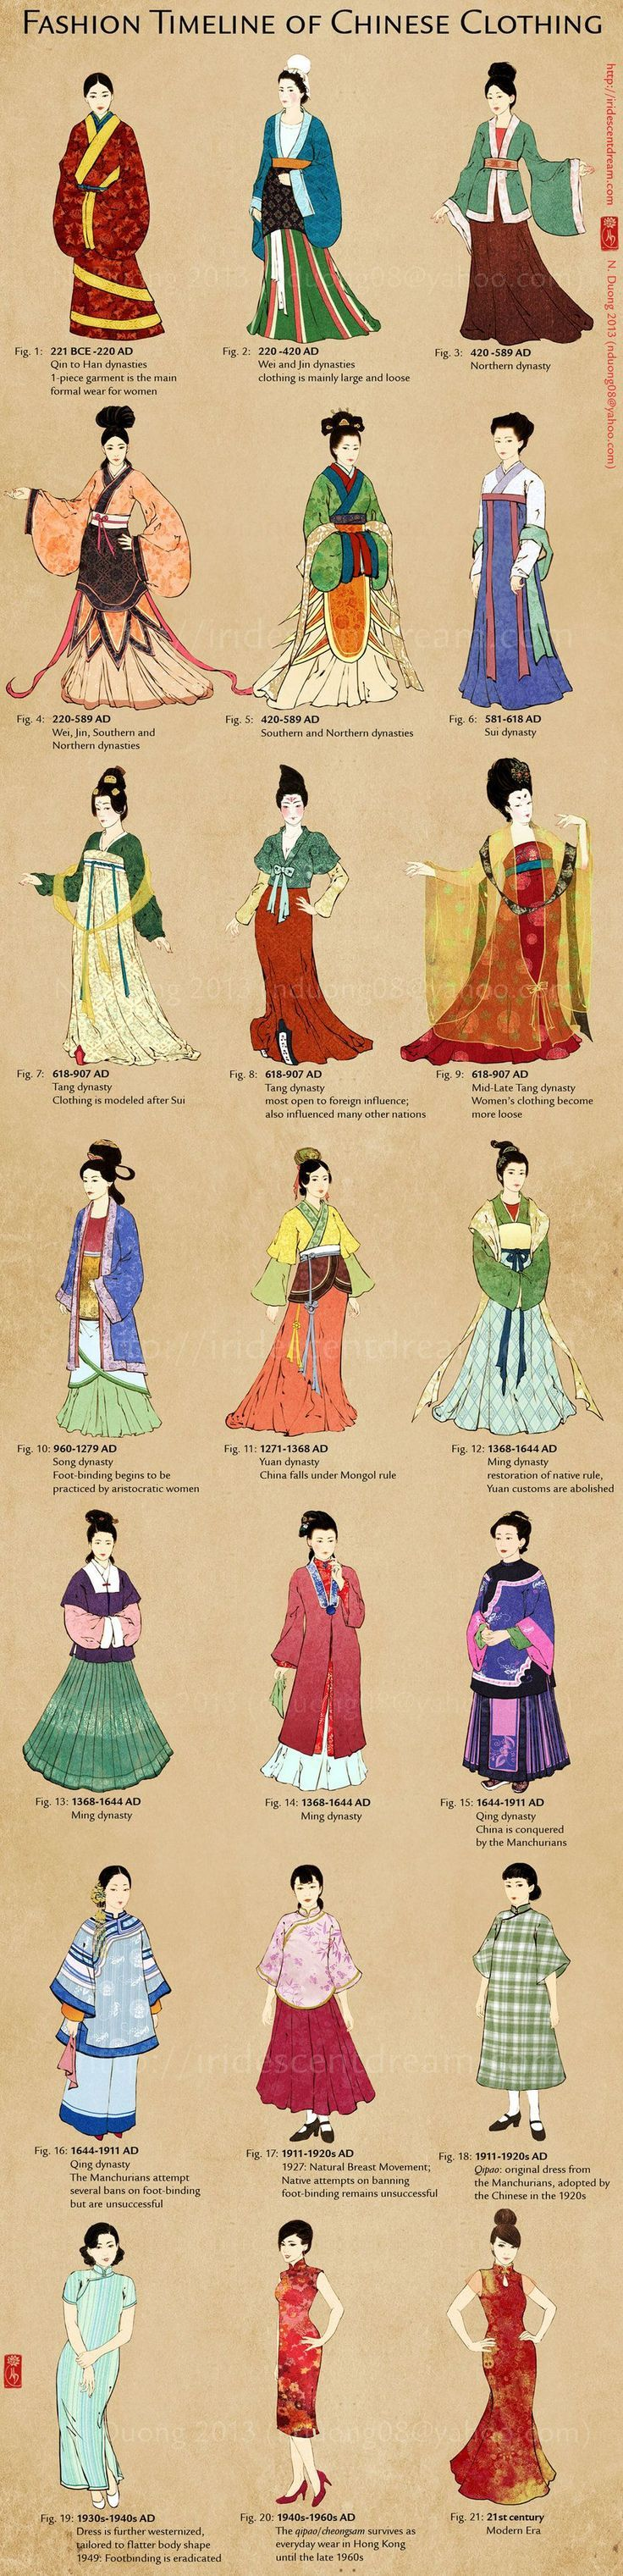 Hair clothing and makeup fashions in asian history more through